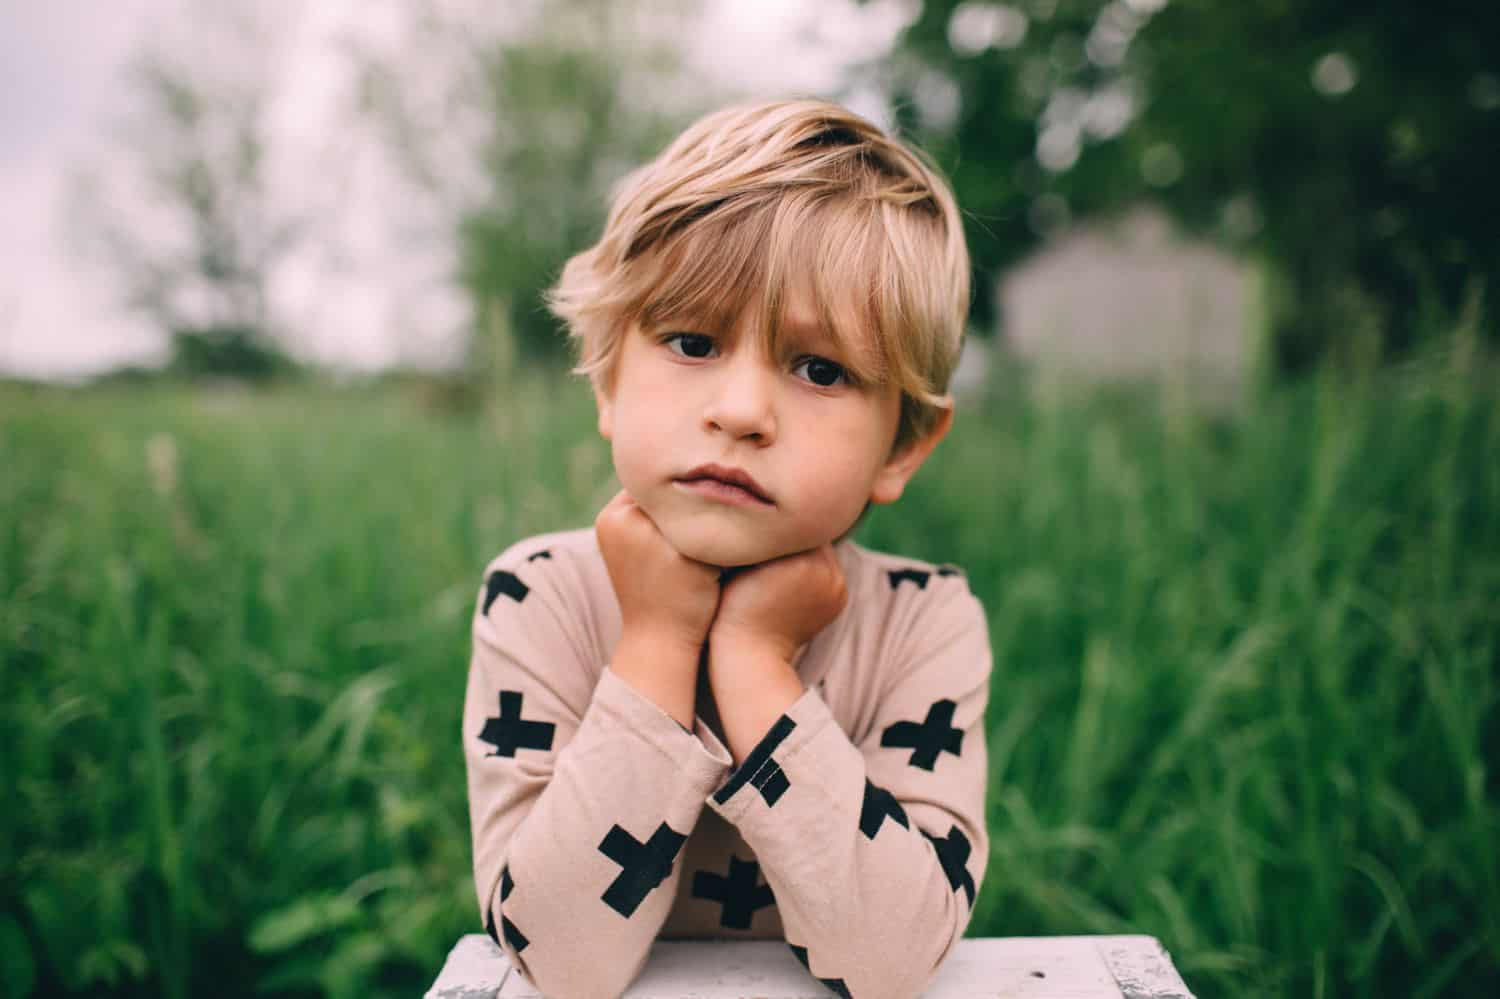 A serious looking child sits in a grassy field with their chin in their hands.